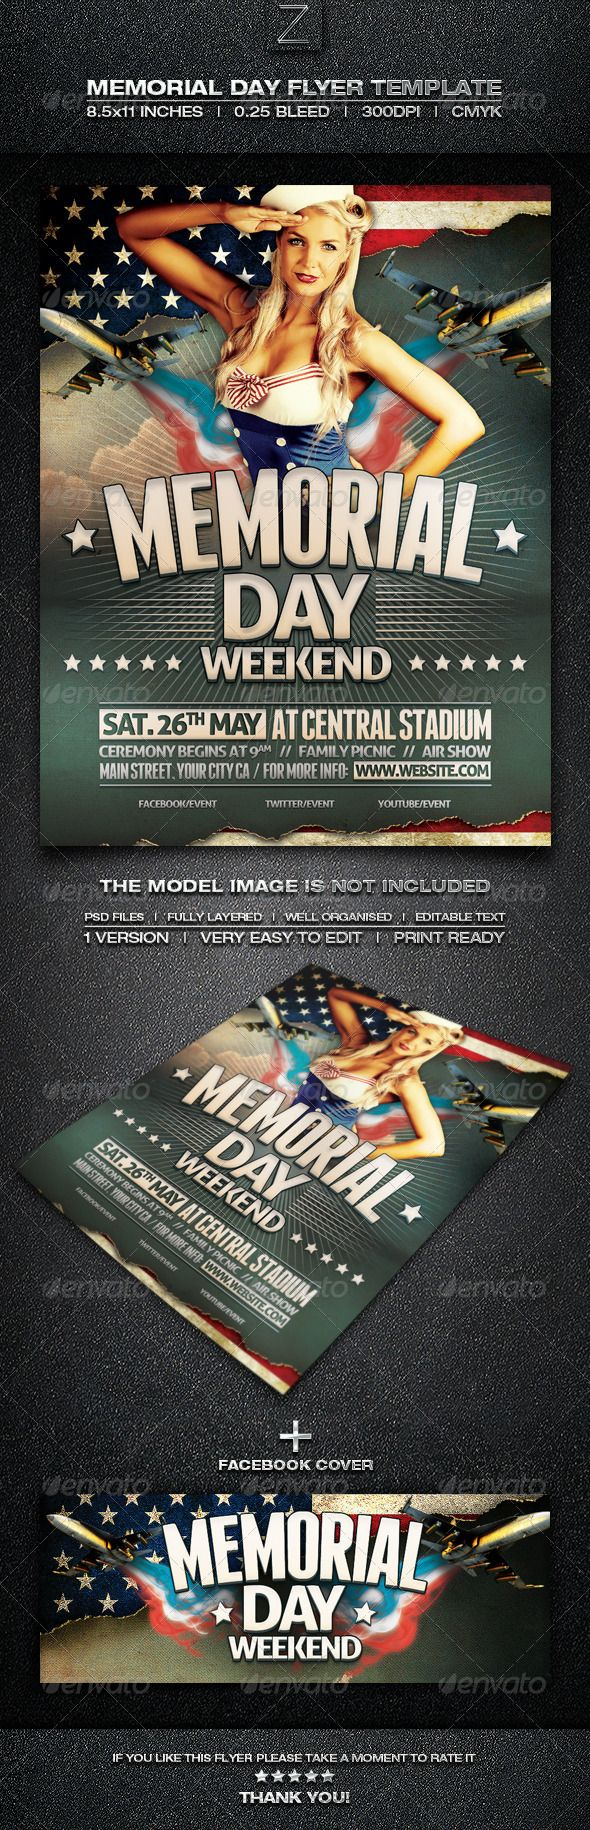 Memorial Day Flyer Template  Photoshop Psd Independence Day